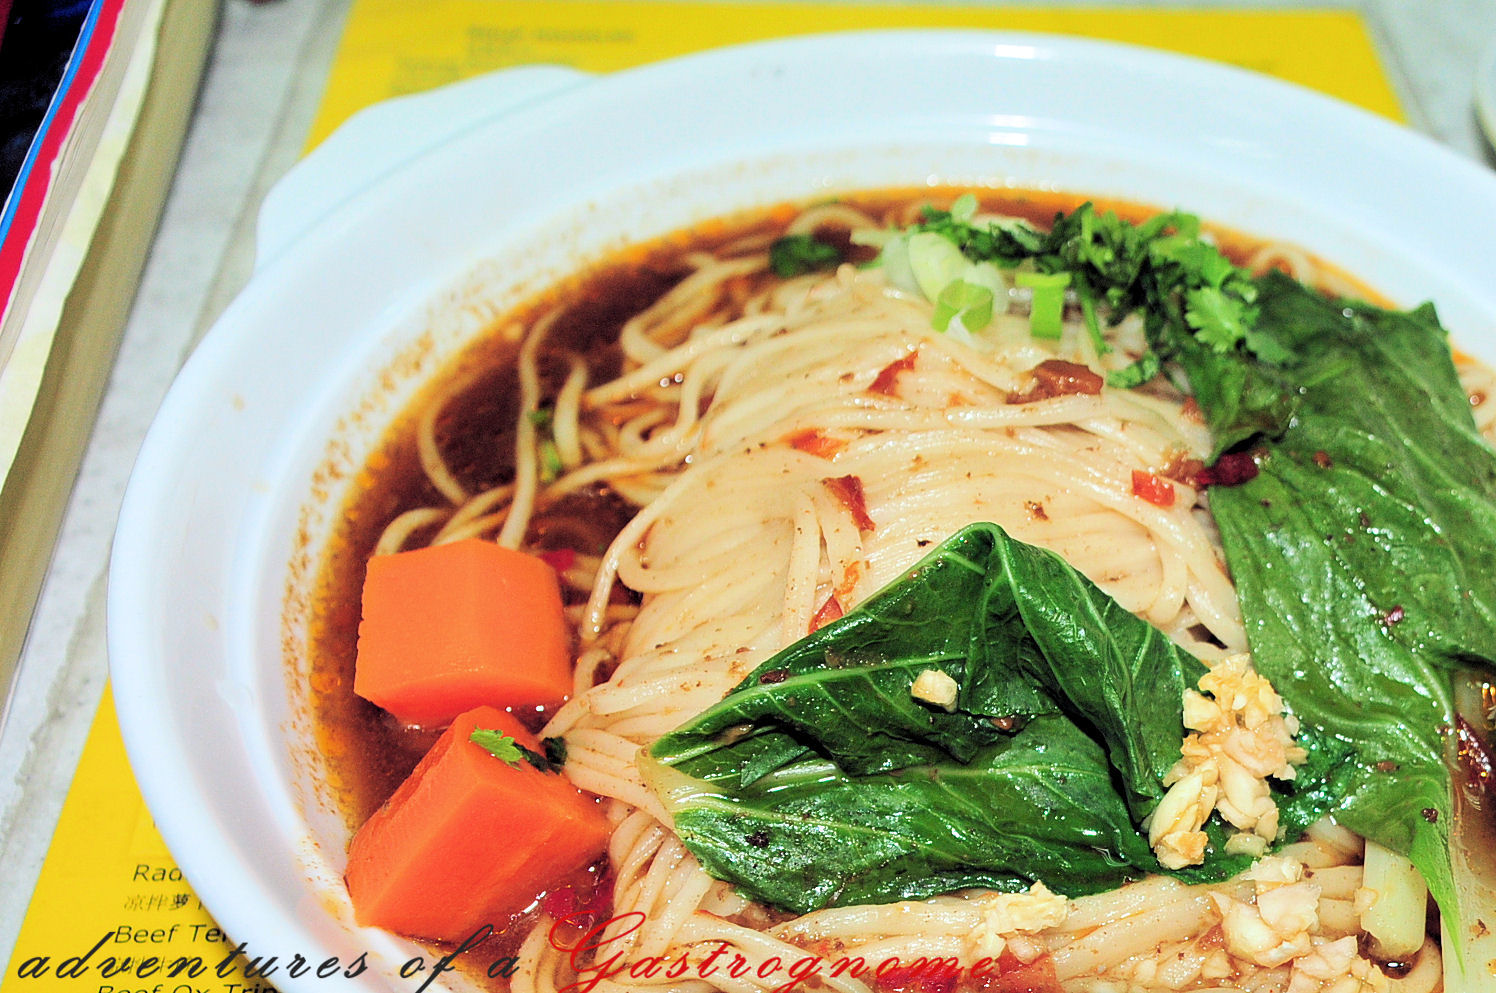 Adventures of a Gastrognome: Shanghai Hand-Pulled Noodles vs